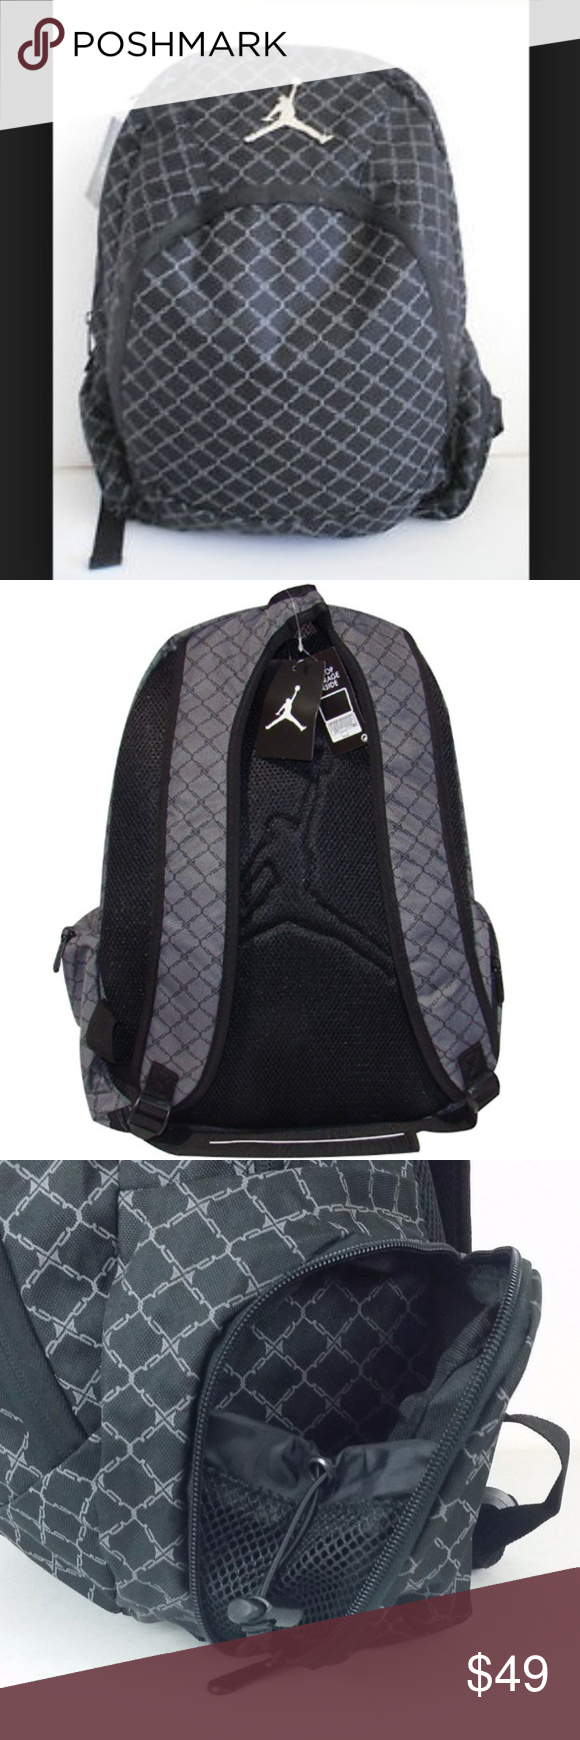 bba24001b2a2b2 Nike Jordan Graphite Backpack Nike Jordan Graphite Backpack 9A1115-783 Laptop  Sleeve Protection Audio